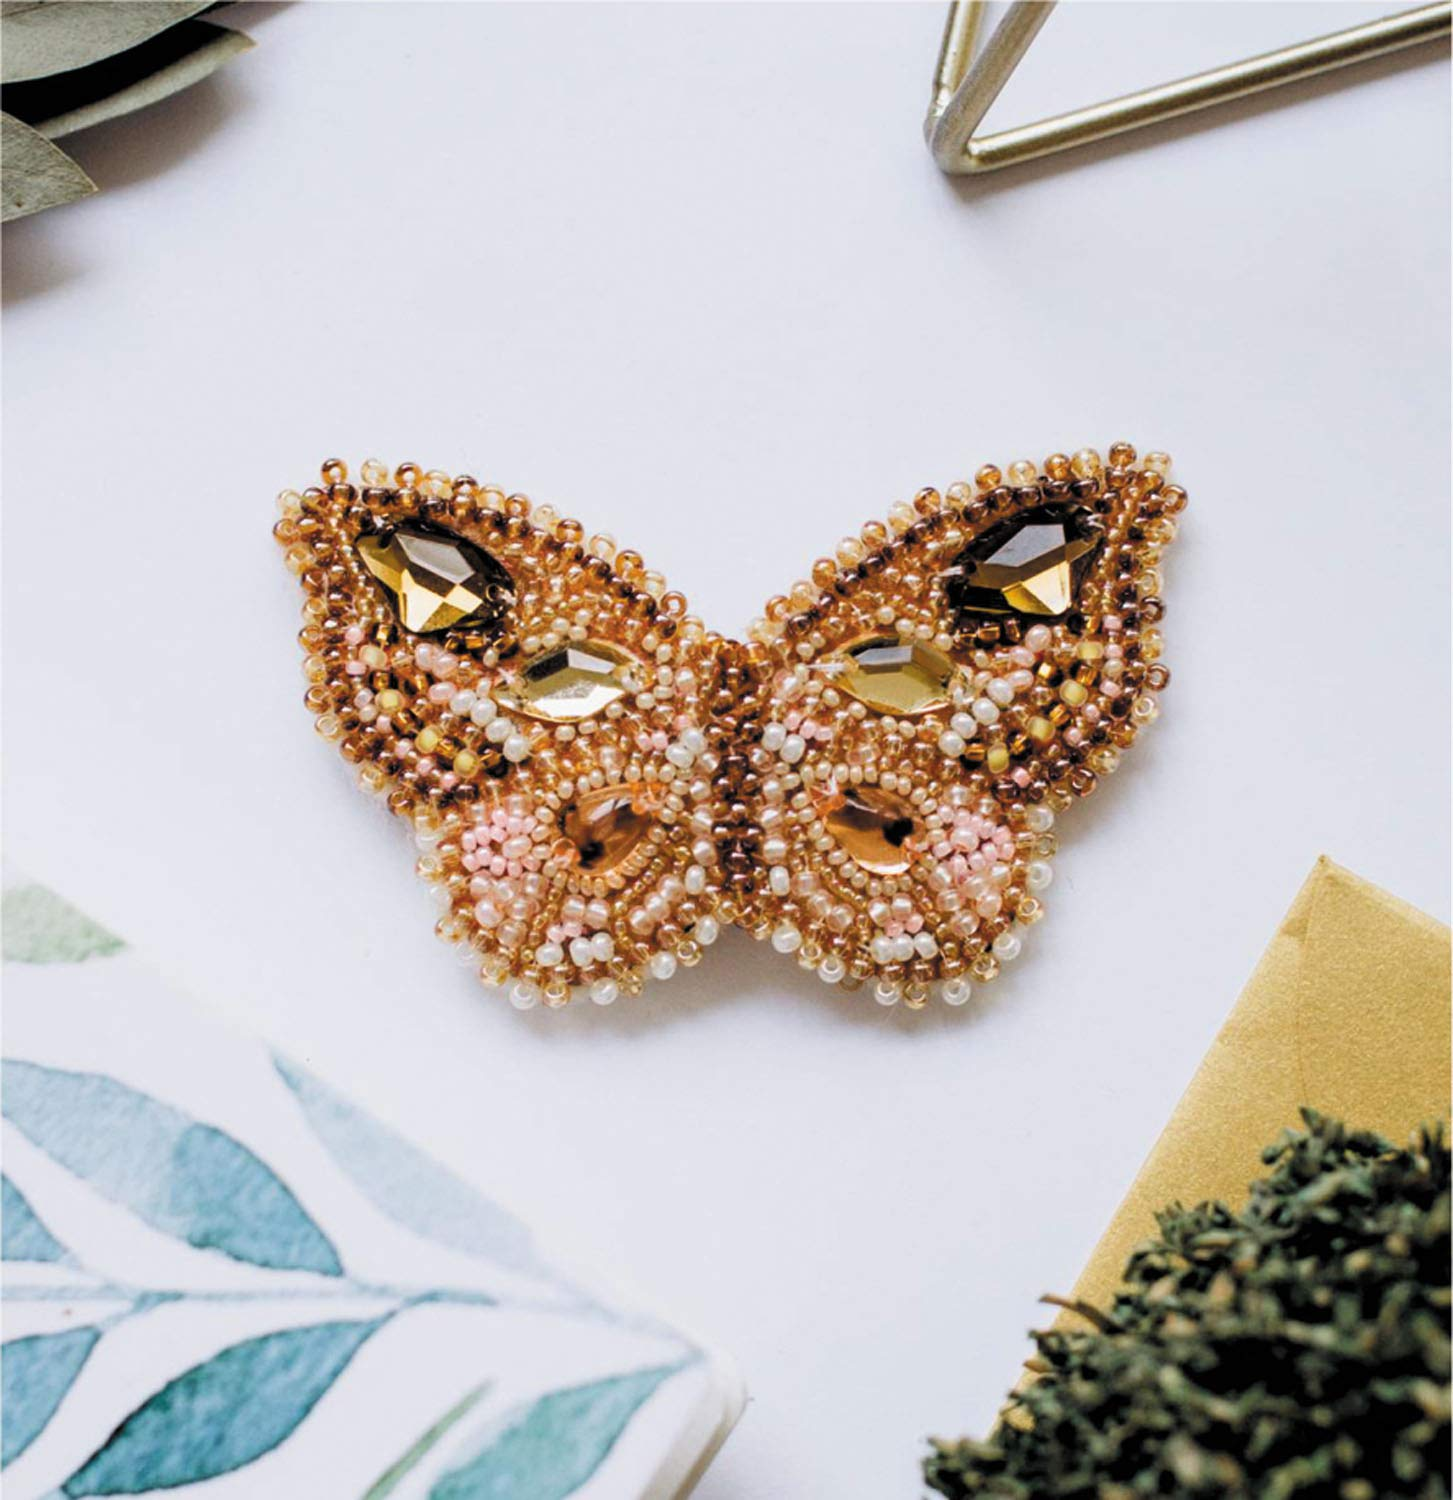 Abris Art Citrine Reflection DIY Bead Embroidery Brooch kit AD-031 Butterfly Magnet Needlework Modern Embroidery-Decoration Craft